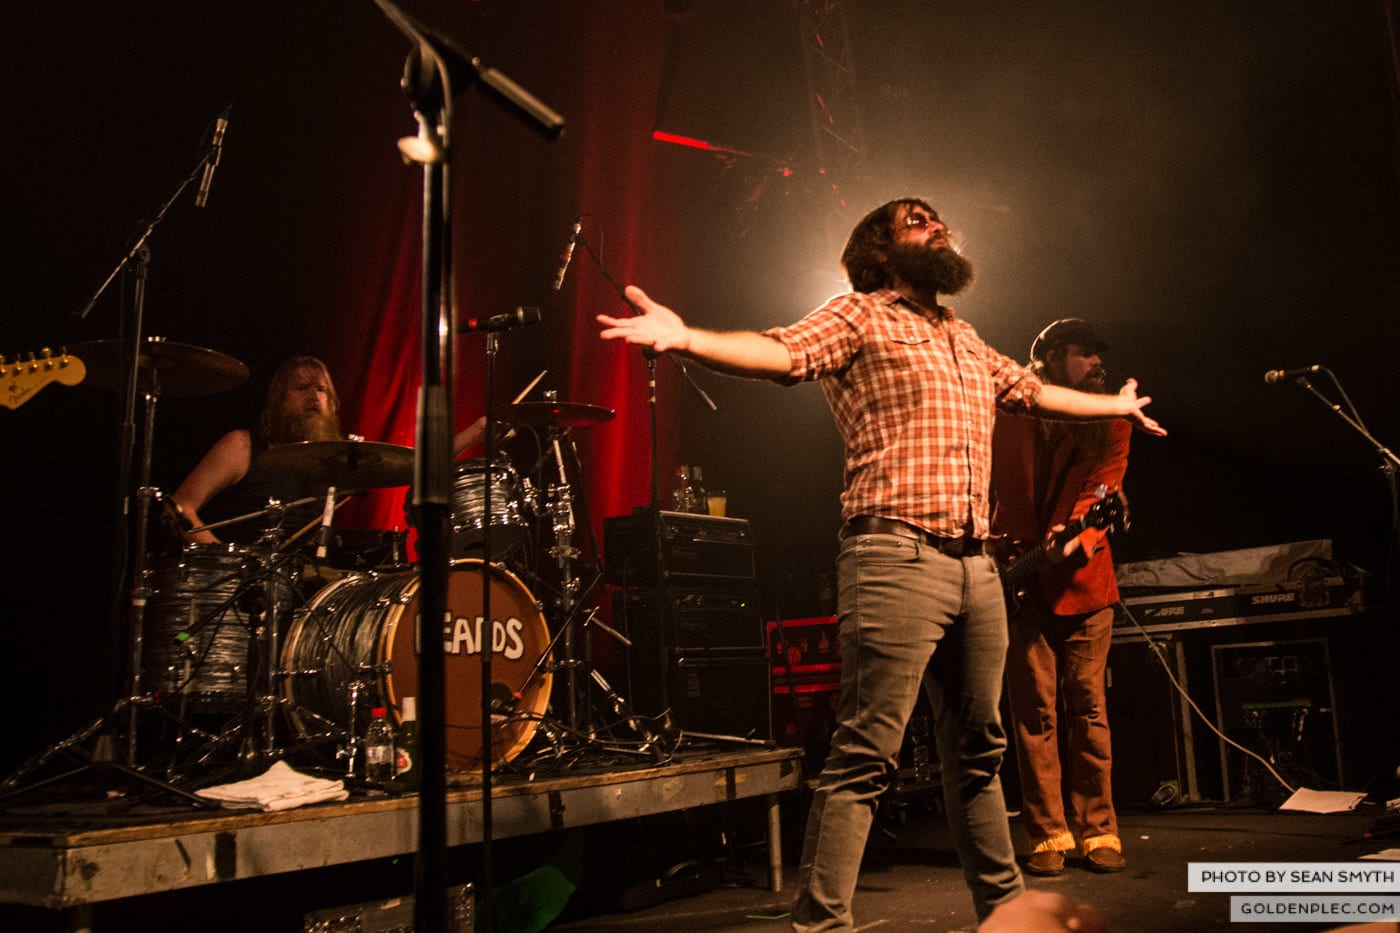 the-beards-at-button-factory-by-sean-smyth-10-12-14-2-of-49